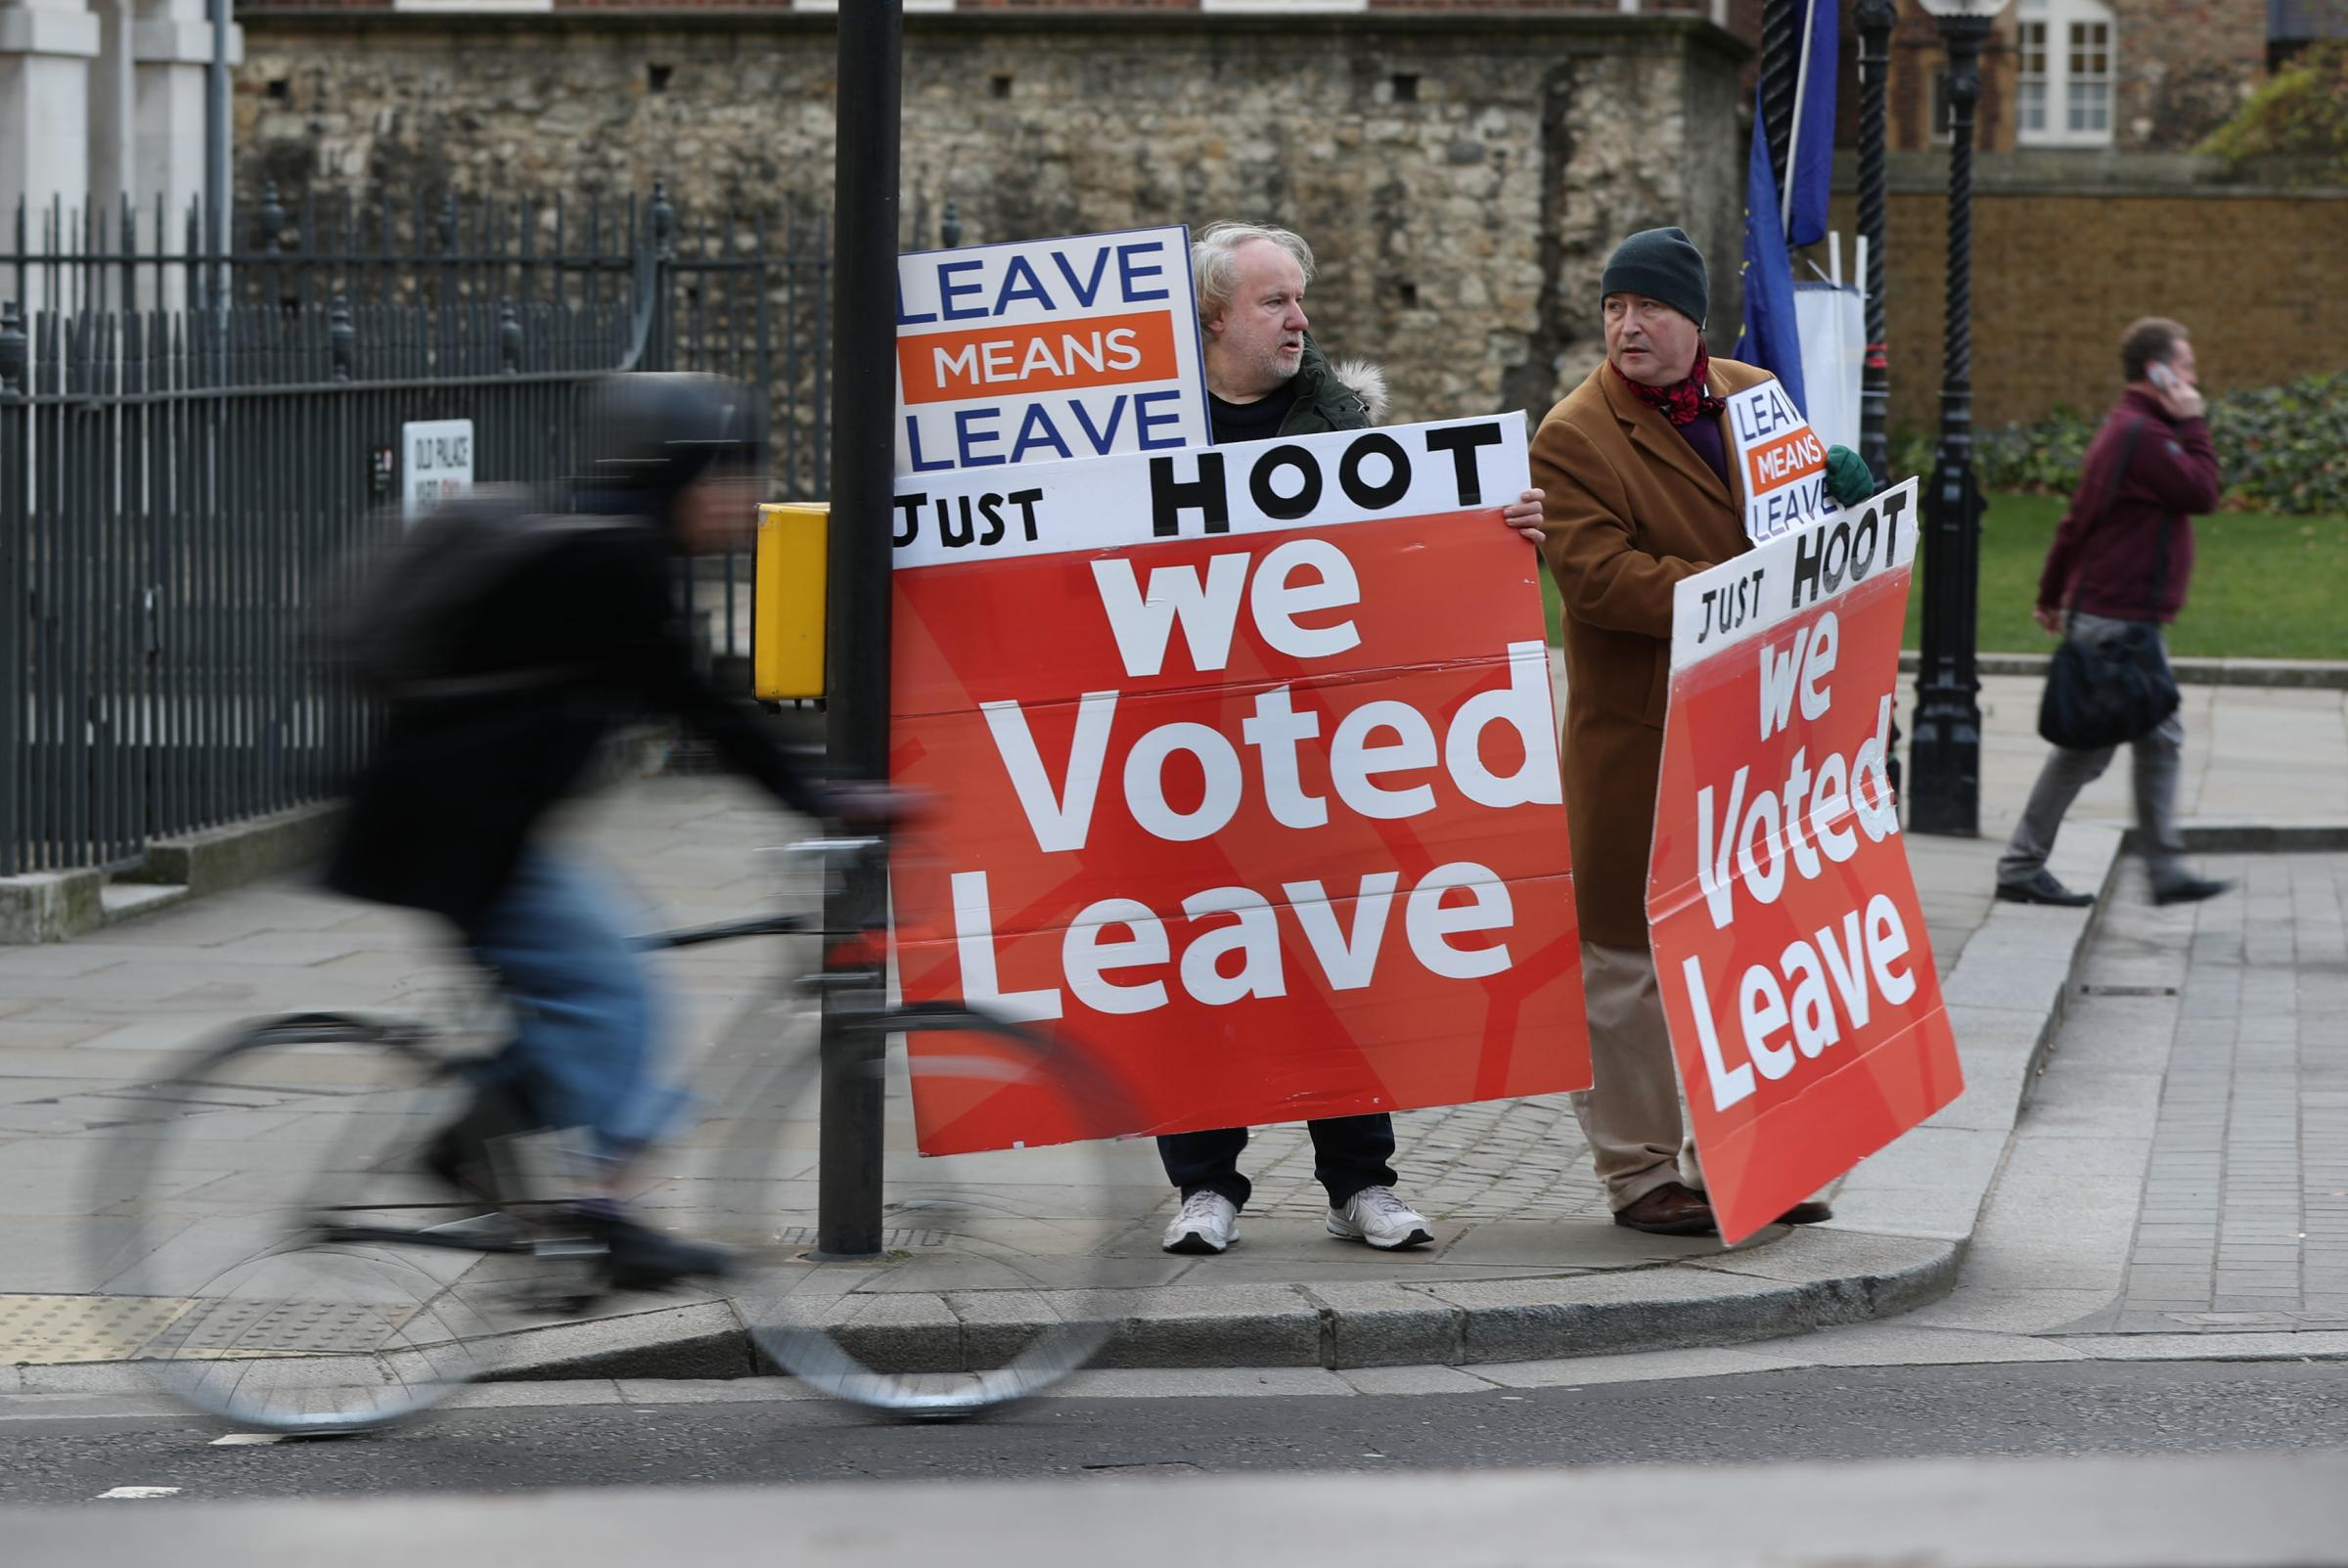 Leave voters who seek independence should be backing the SNP